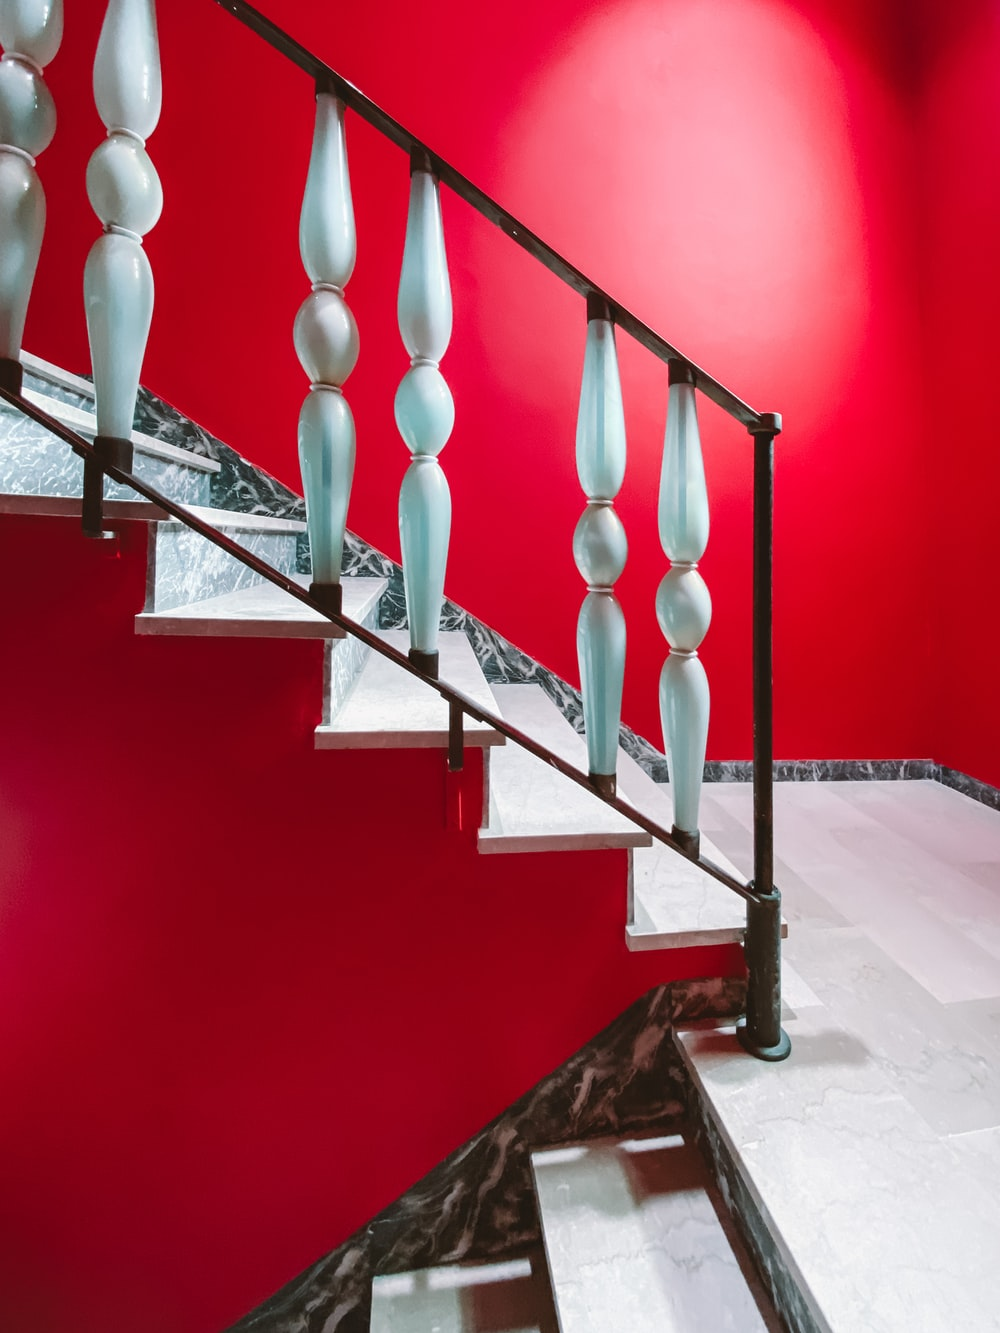 black metal staircase with red wall